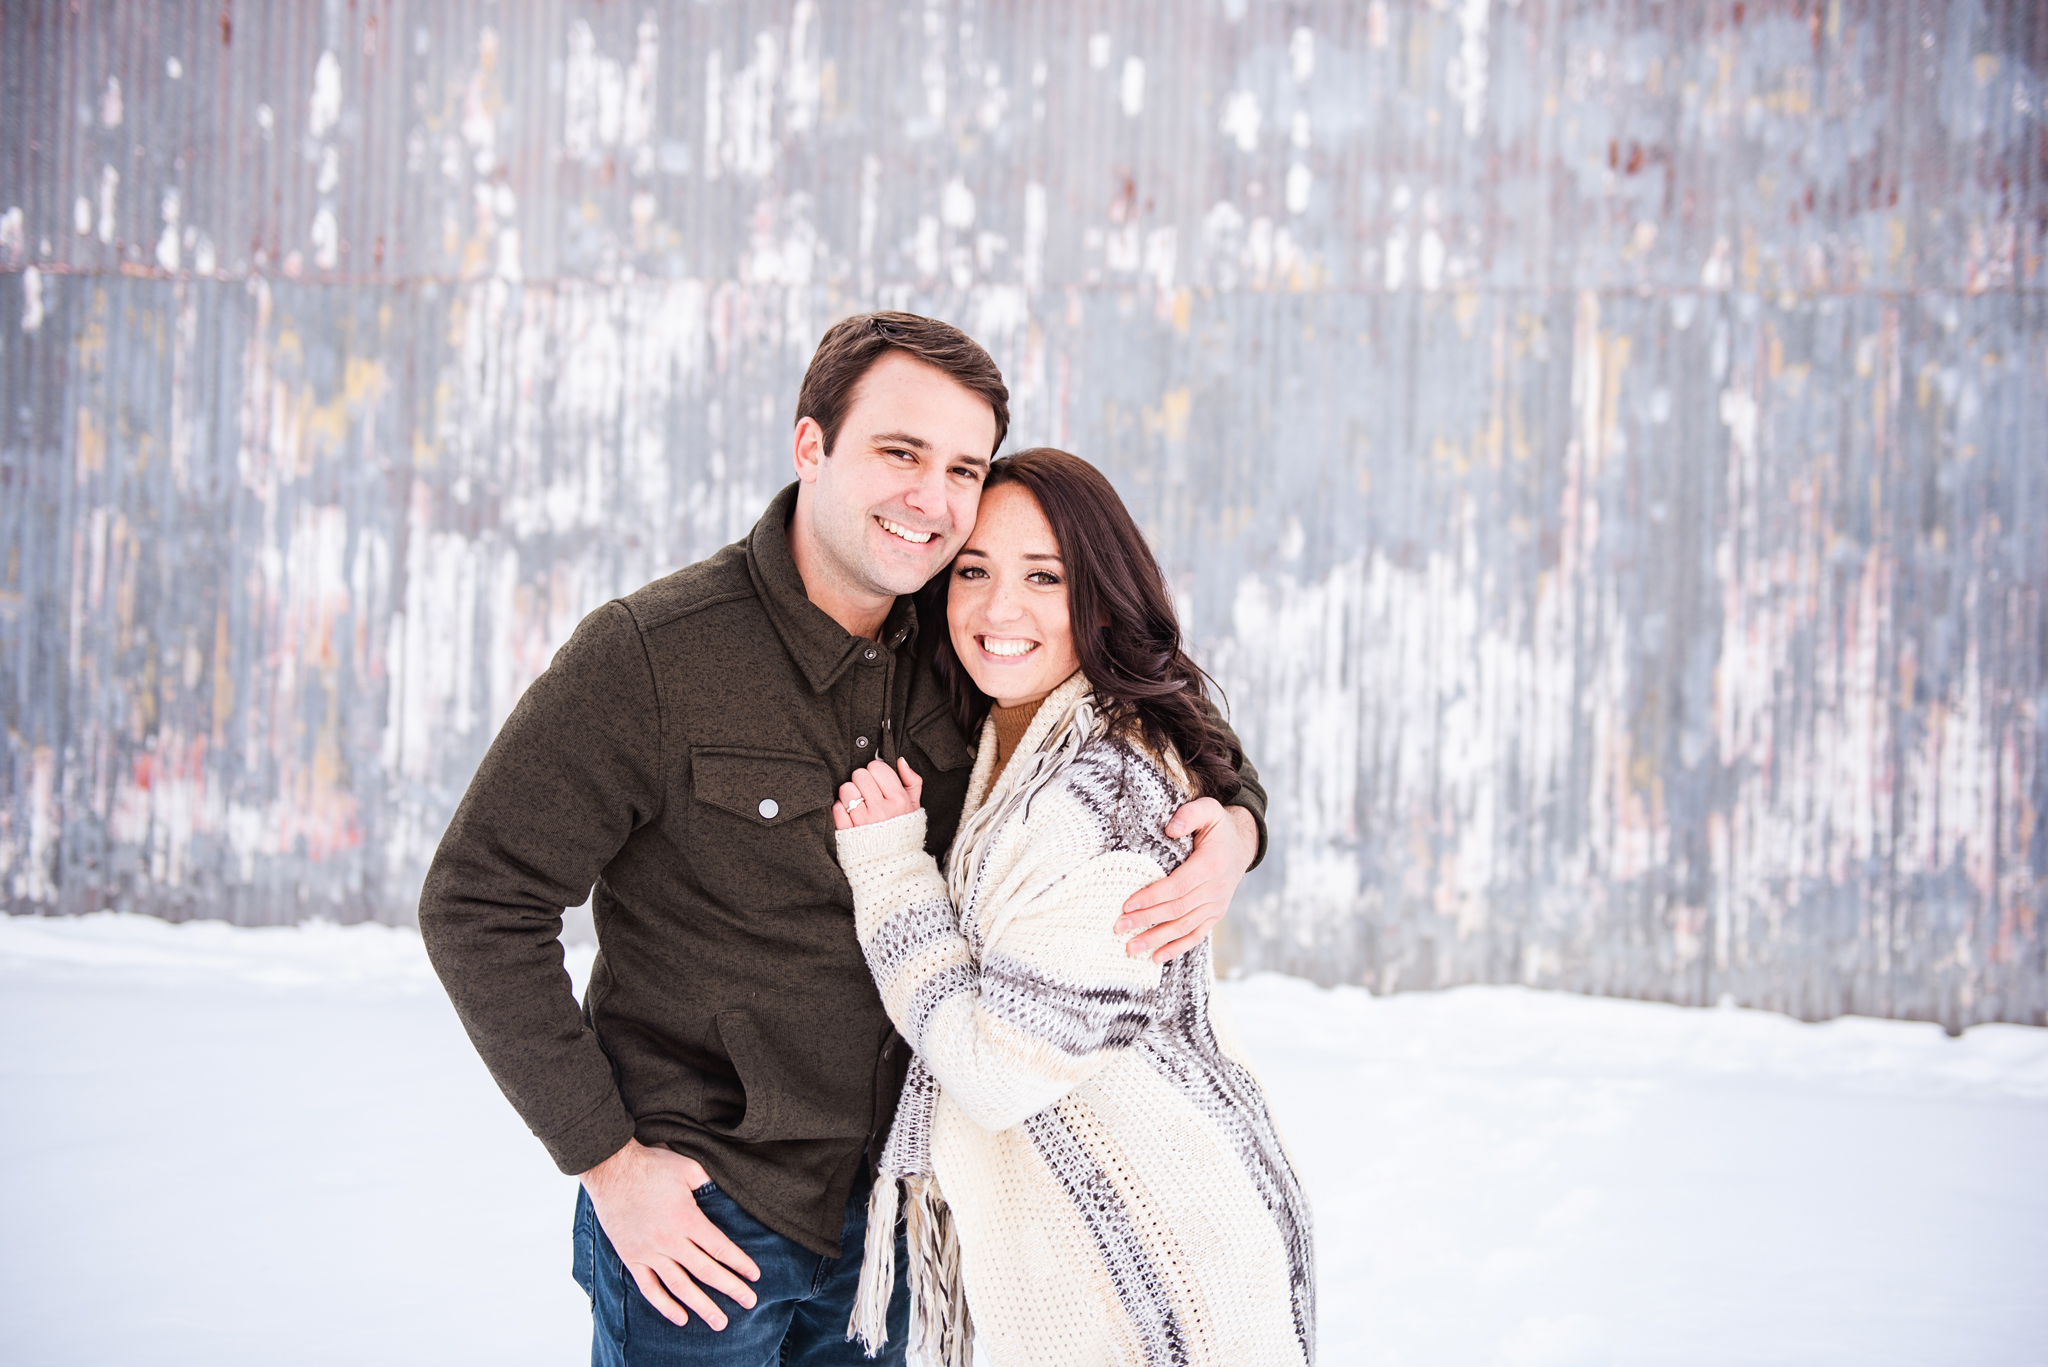 Fallbrook_Central_NY_Engagement_Session_JILL_STUDIO_Rochester_NY_Photographer_DSC_4755.jpg